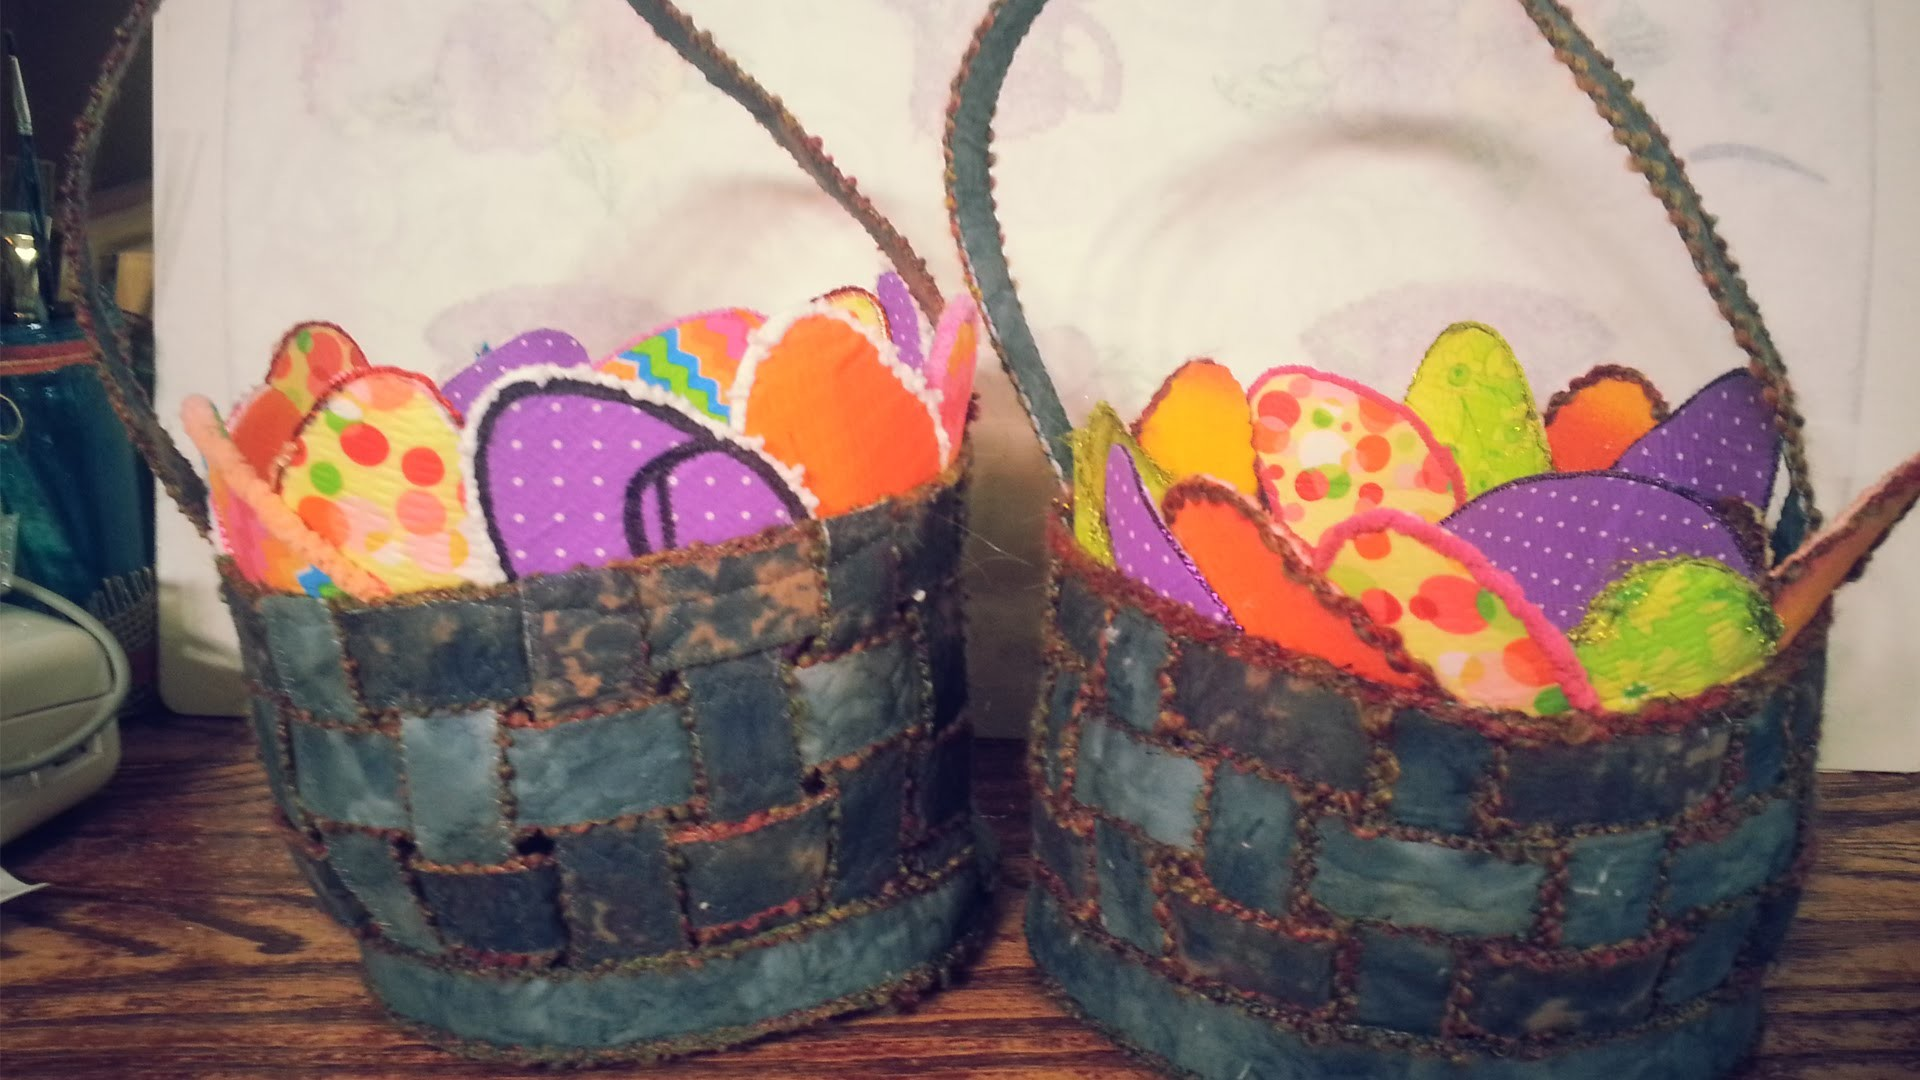 Sewing an Easter Egg Basket Casserole Dish Insulator - Episode 5